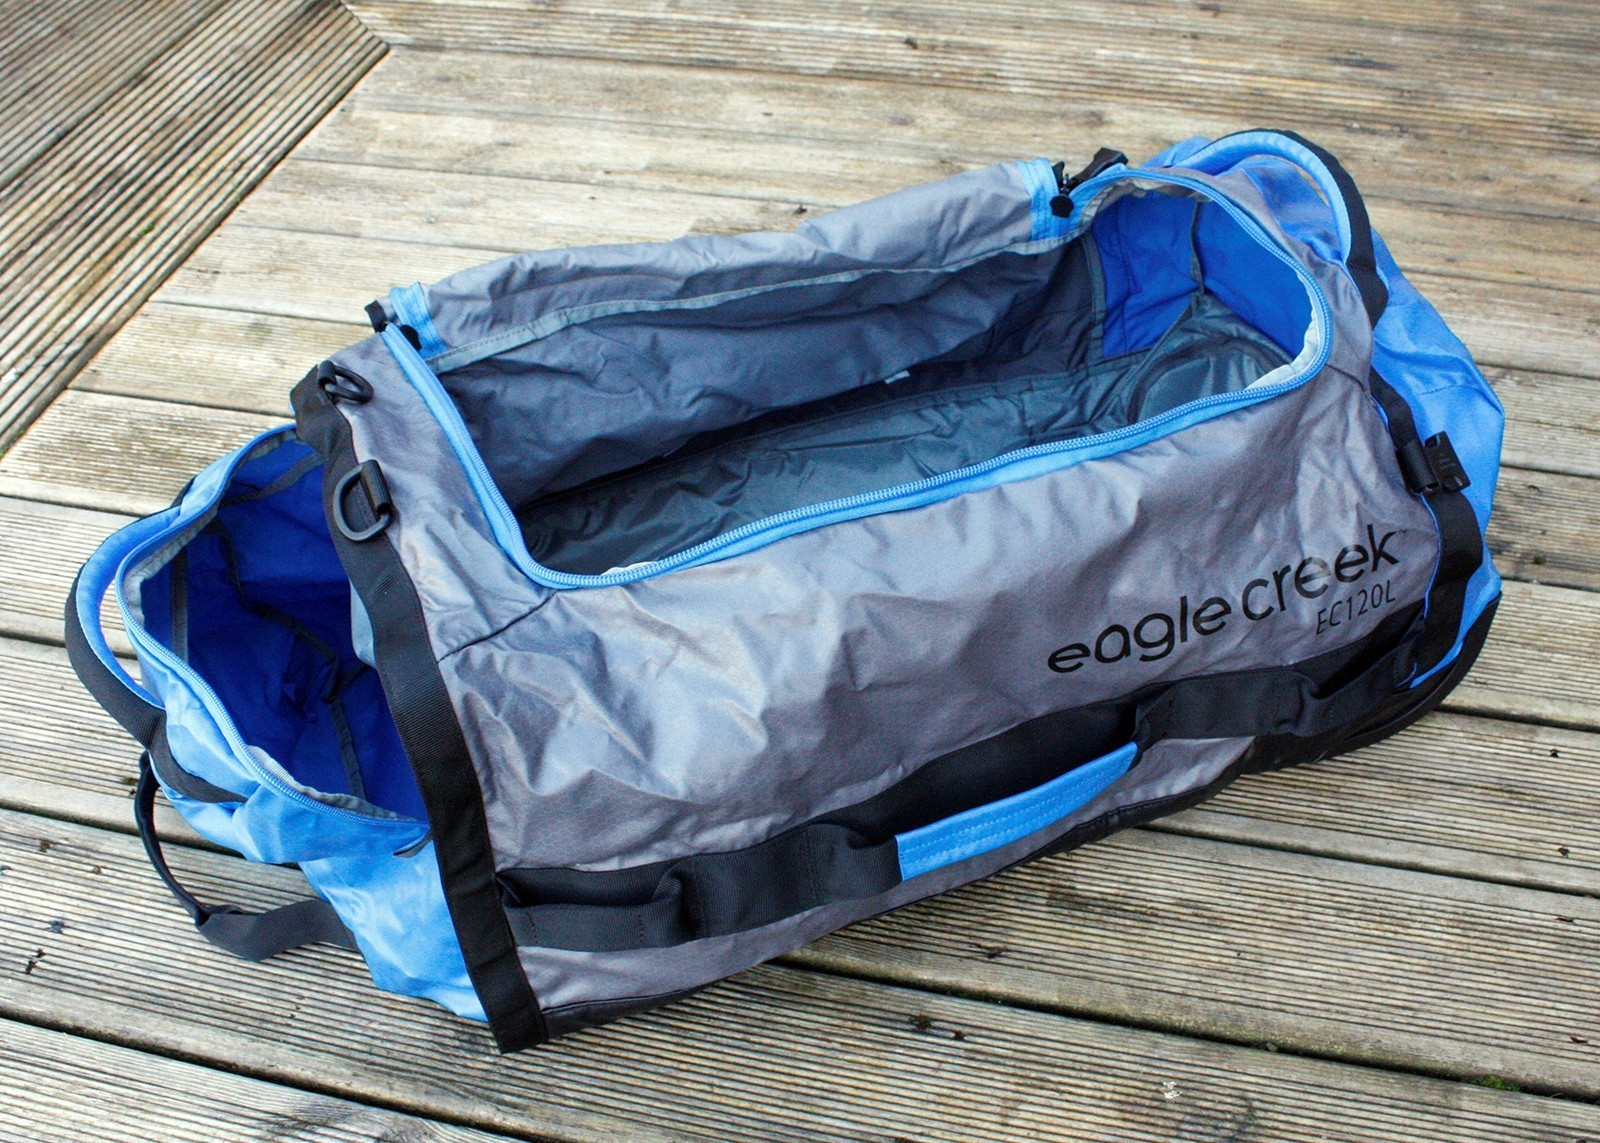 Travel gear reviews: kit for a wilderness adventure